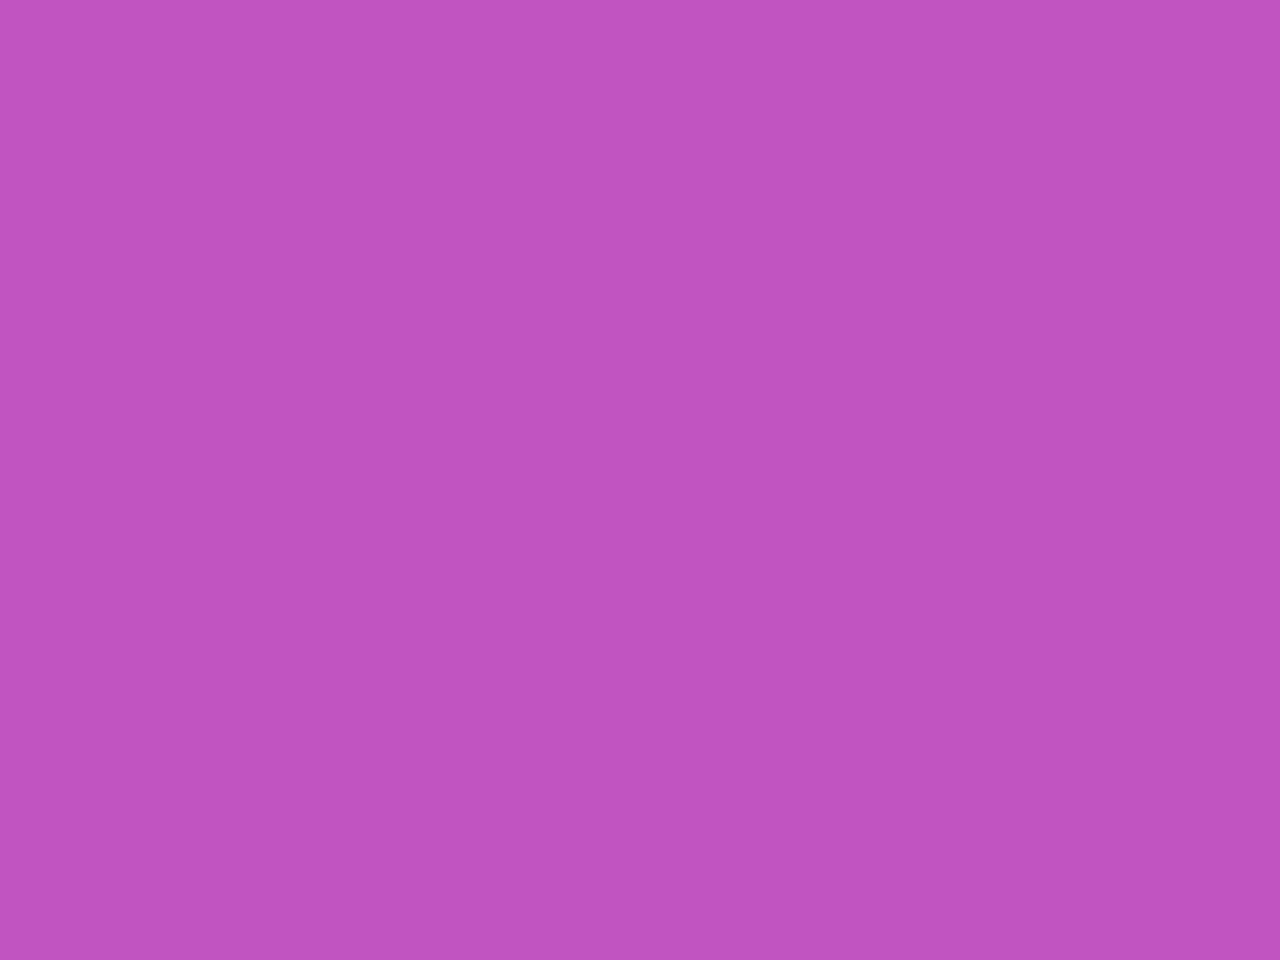 1280x960 Deep Fuchsia Solid Color Background